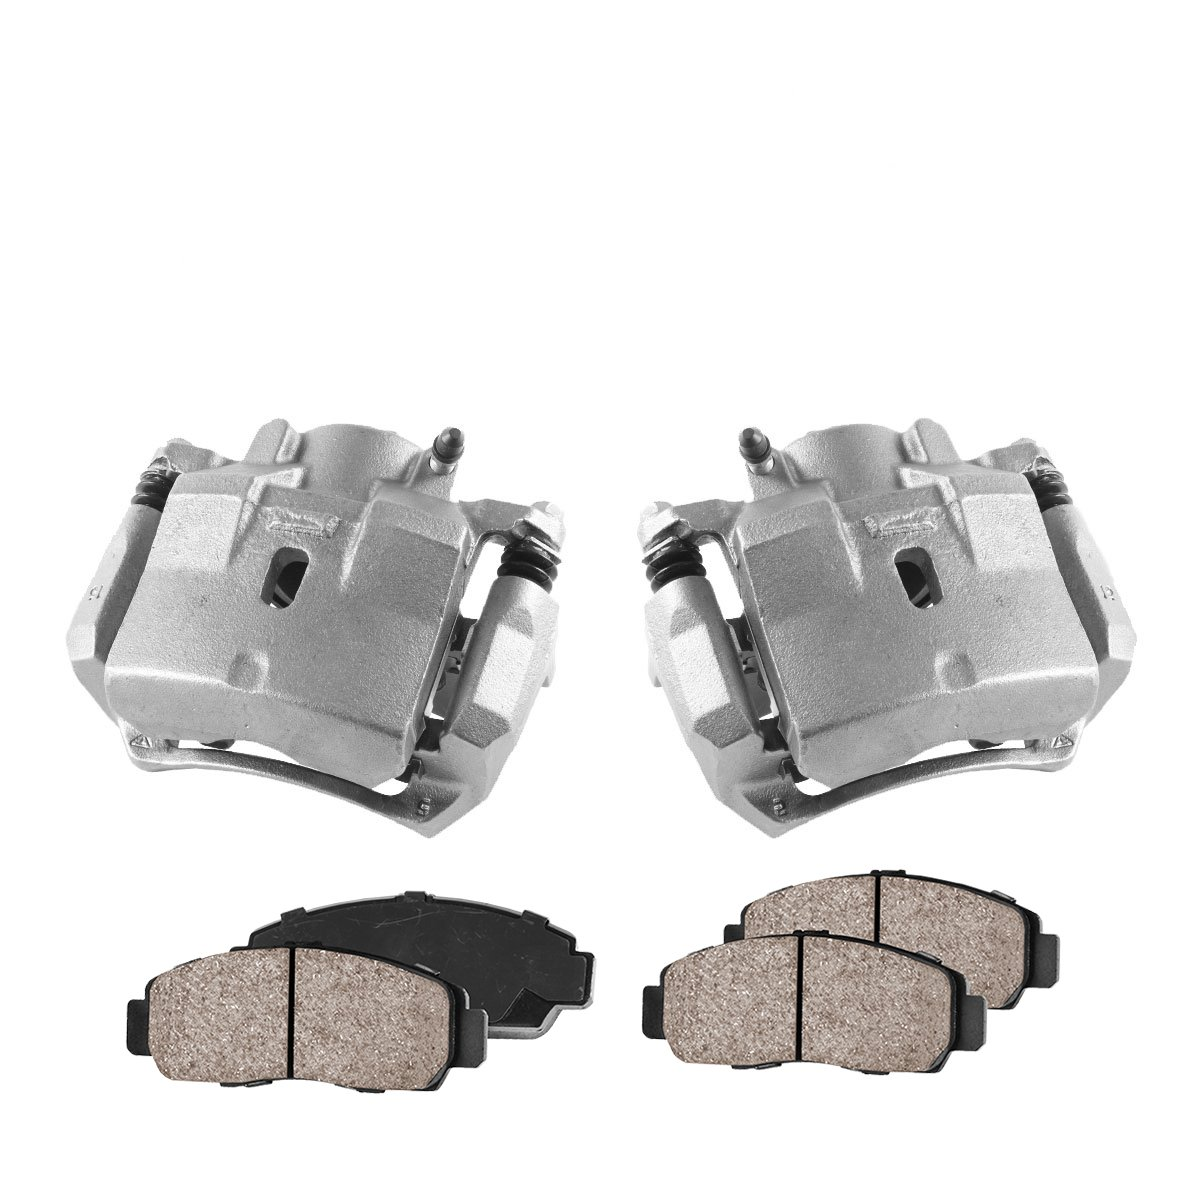 Quiet Low Dust Ceramic Brake Pads 2 FRONT Premium Loaded OE Caliper Assembly Set COEK01475